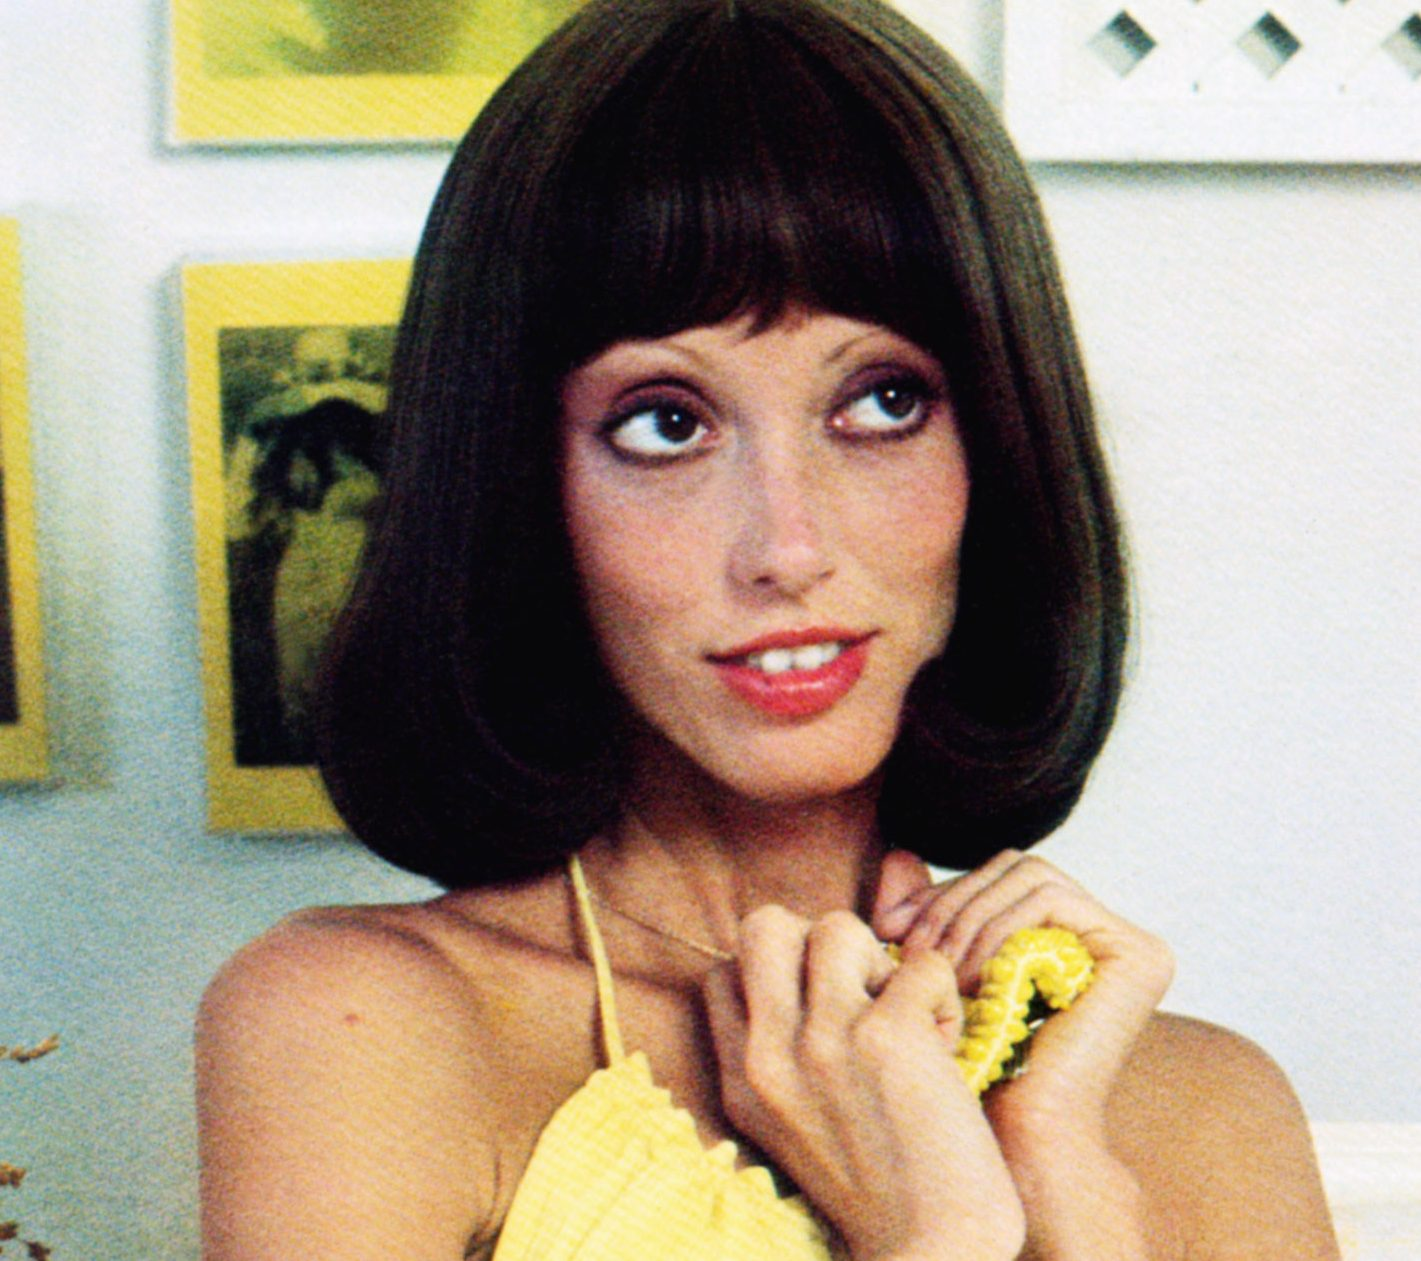 M8DTHWO FE016 e1625223079793 What Happened To The Shining's Shelley Duvall